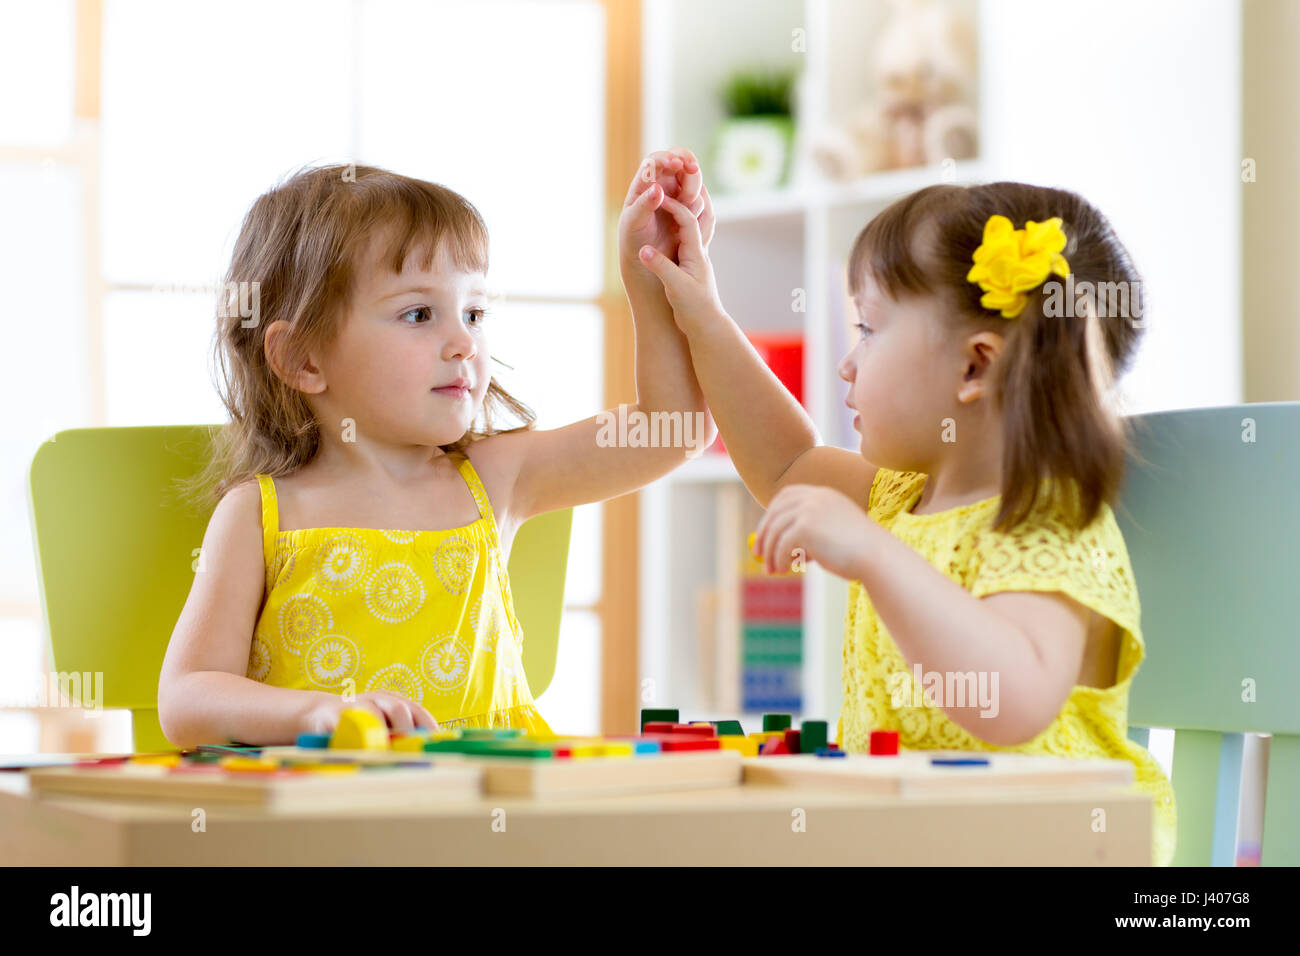 Two cute little girls playing together in daycare Stock Photo